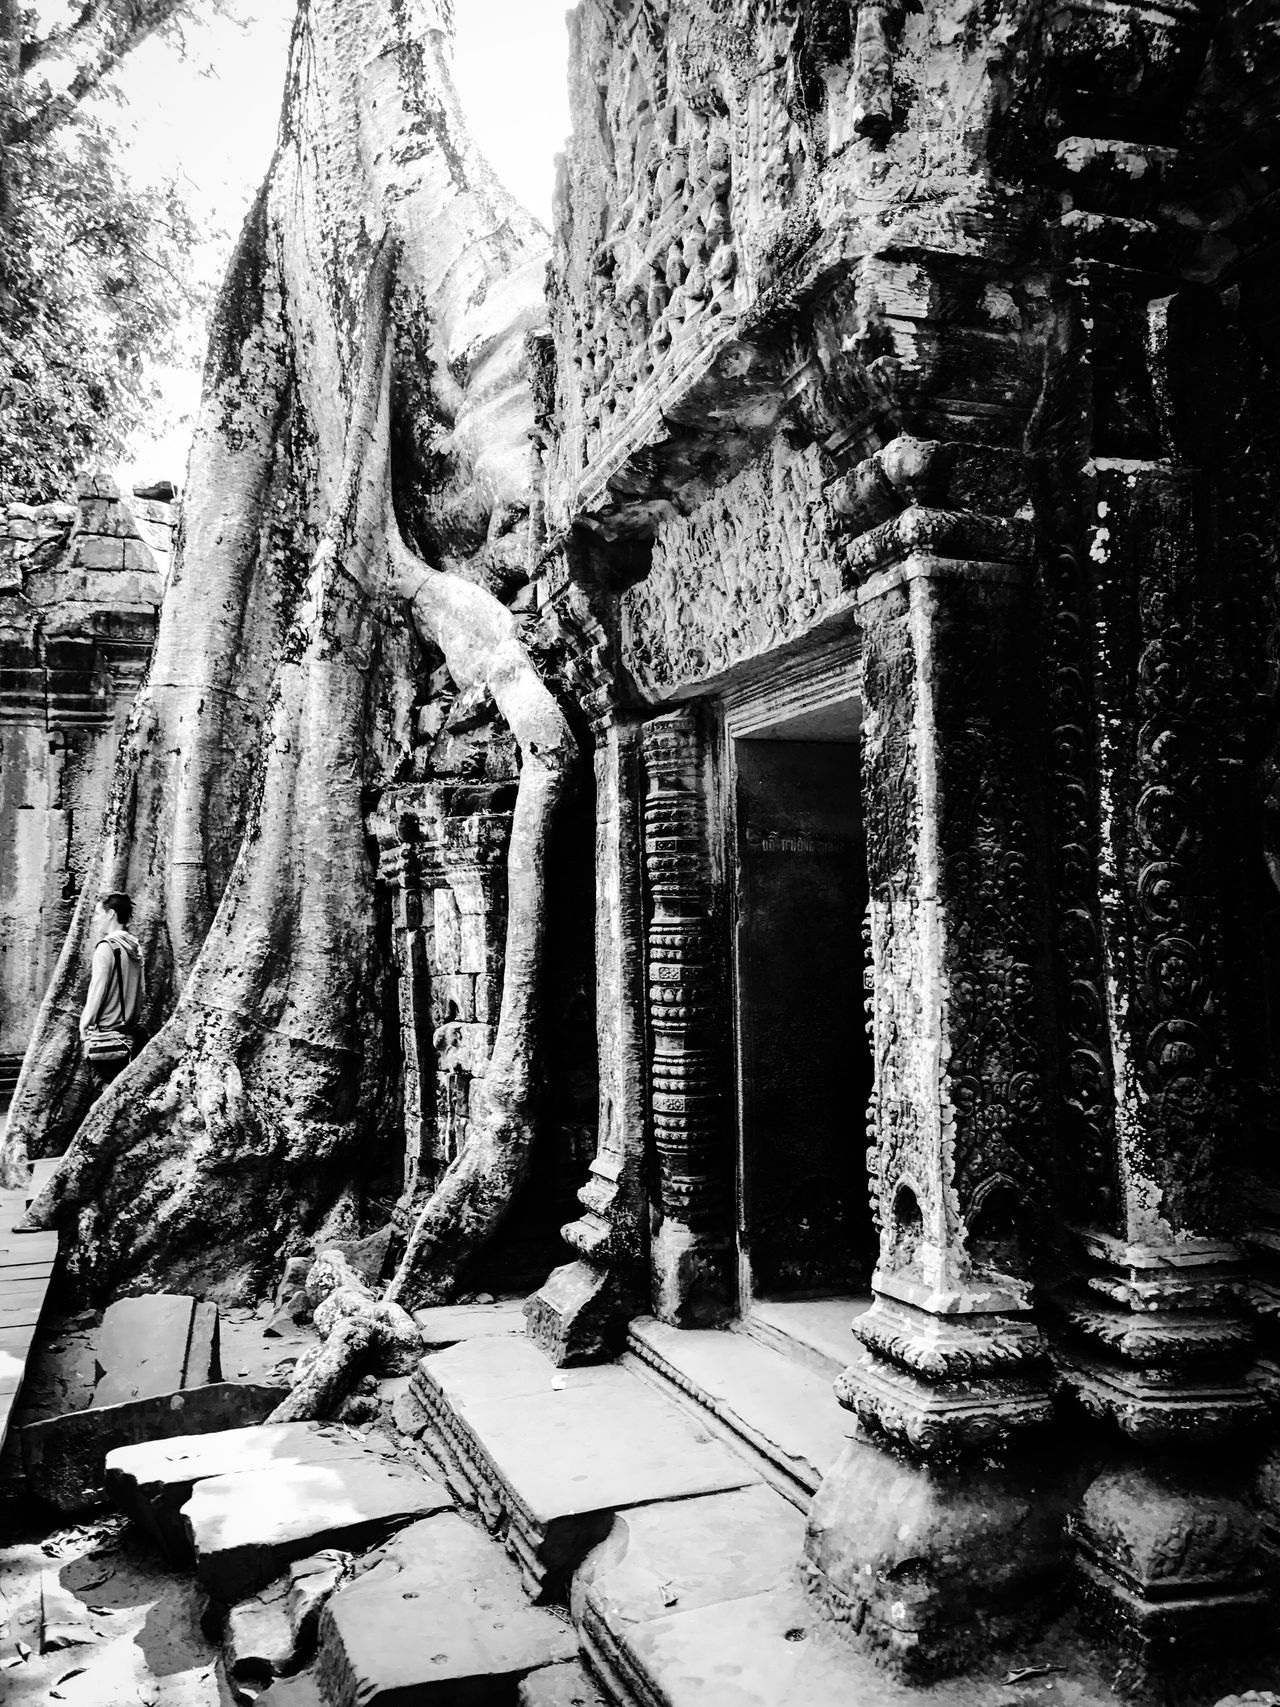 Angkor Thom Cambodia TombRider Architecture Khmer Empire Place Of Worship